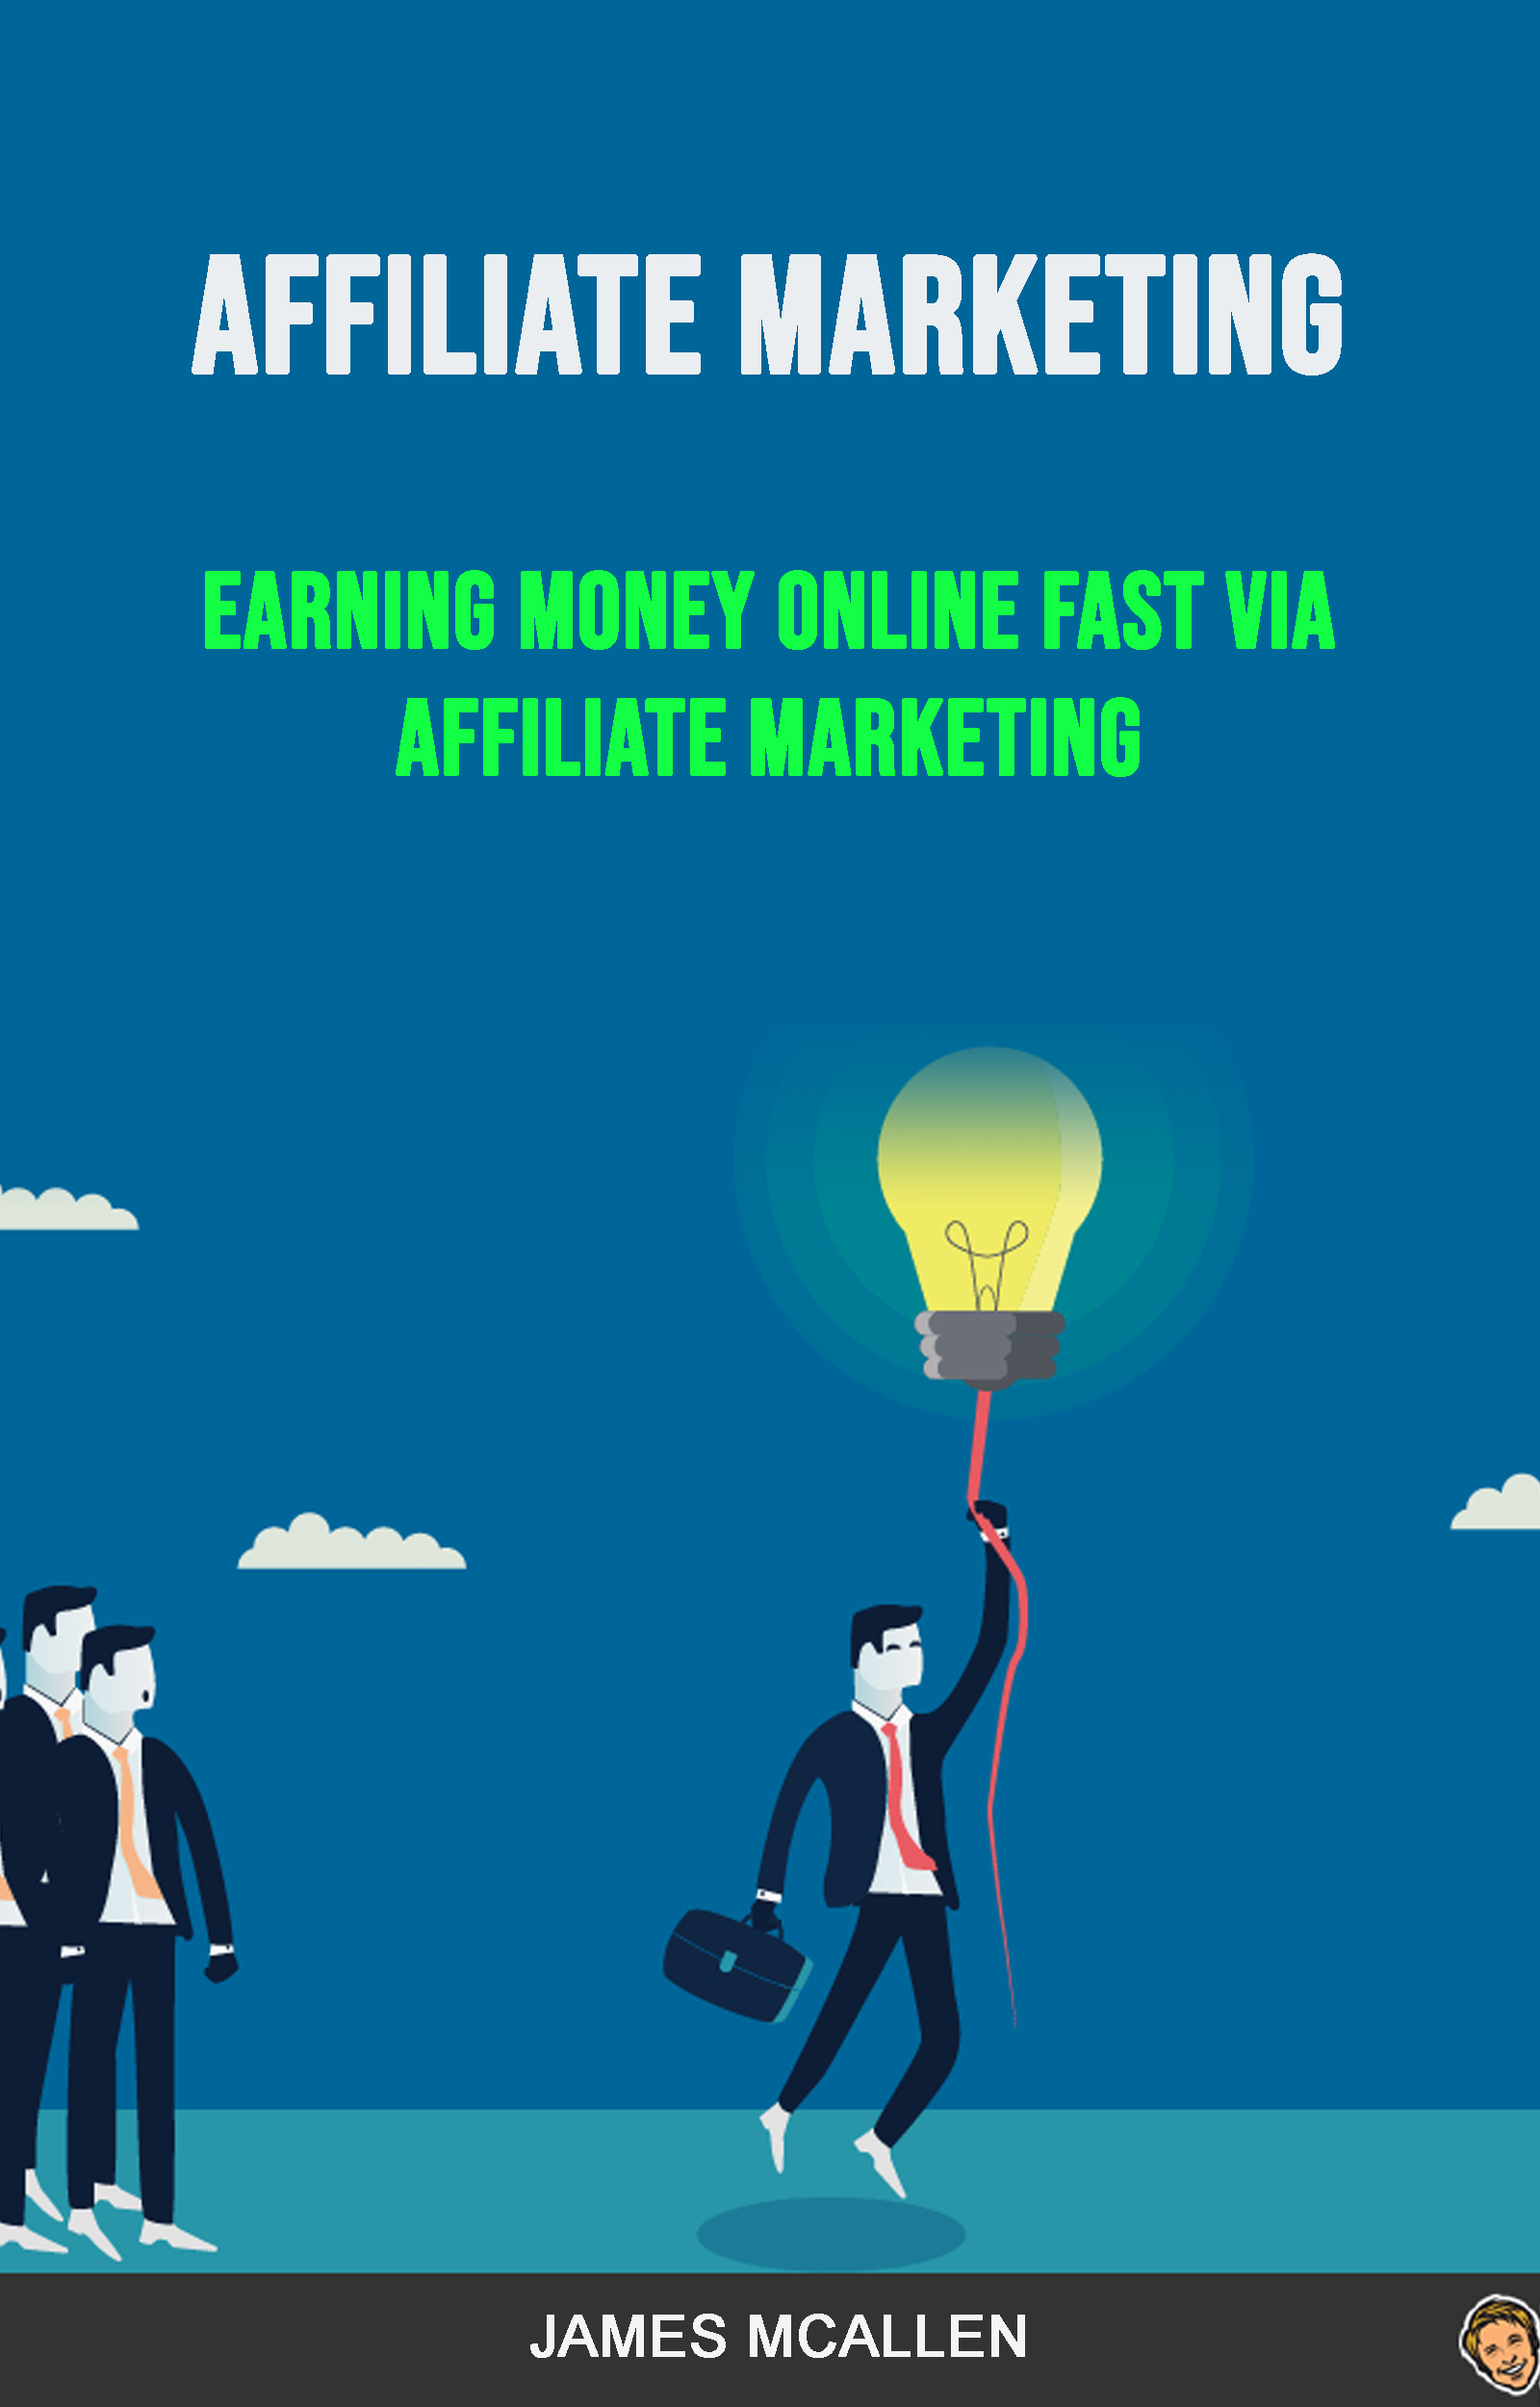 Affiliate marketing: earning money online fast via affiliate marketing